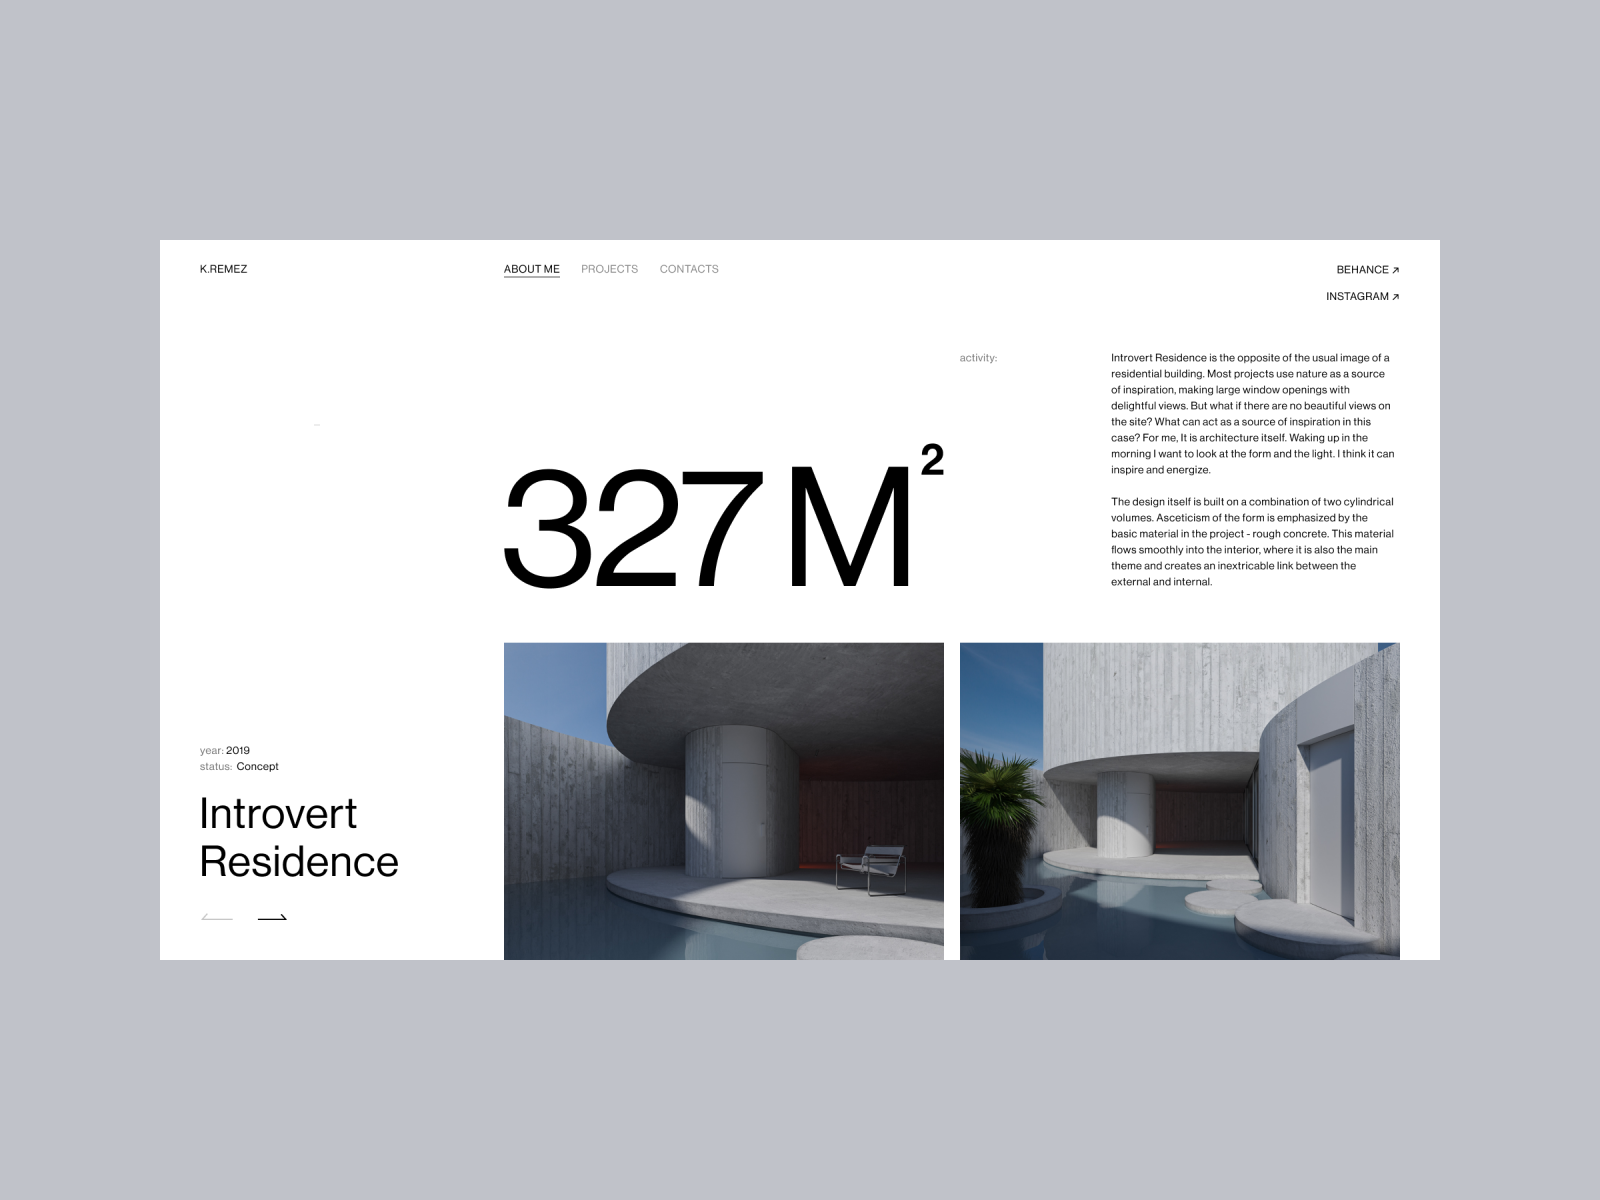 Introvert Residence Page coloumns art pictures photos gallery inner page page designs architecture interior numbers grey typogaphy ux ui graphic design composition swiss grid